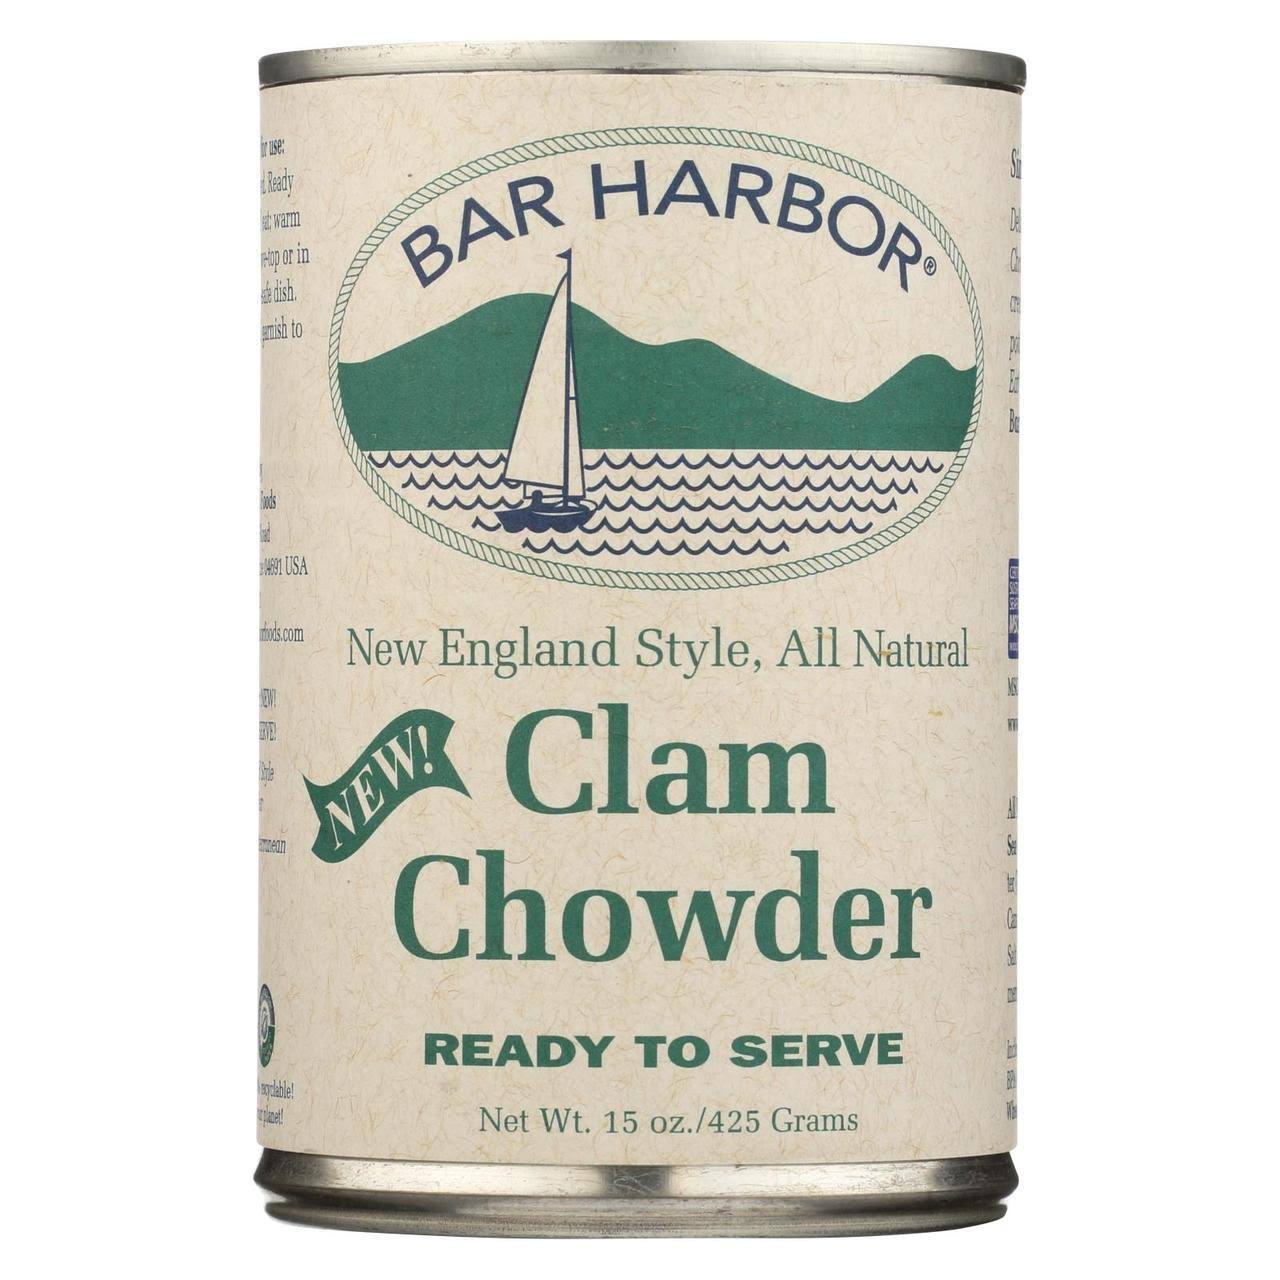 Bar Harbor Clam Chowder, New England Style - 15 oz